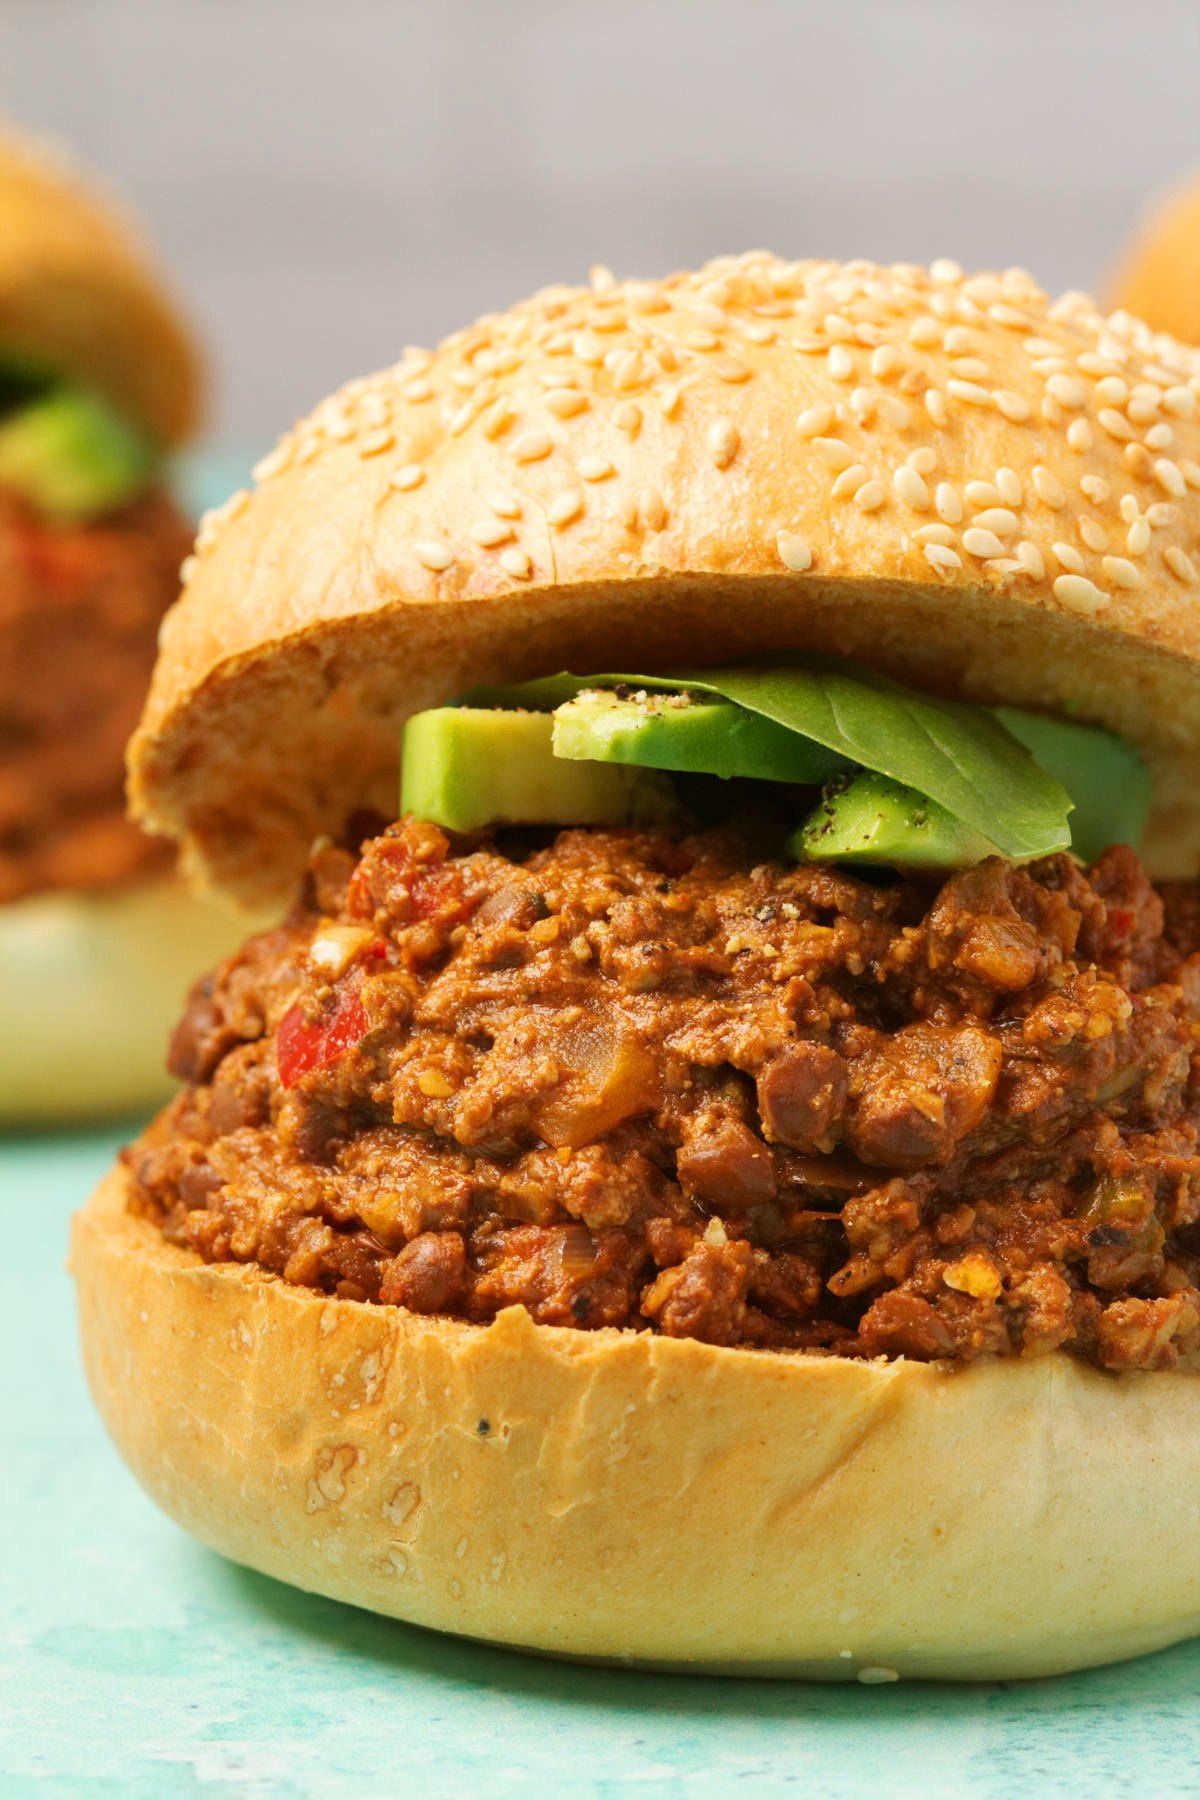 Vegan Sloppy Joe topped with sliced avocado and fresh basil leaves.